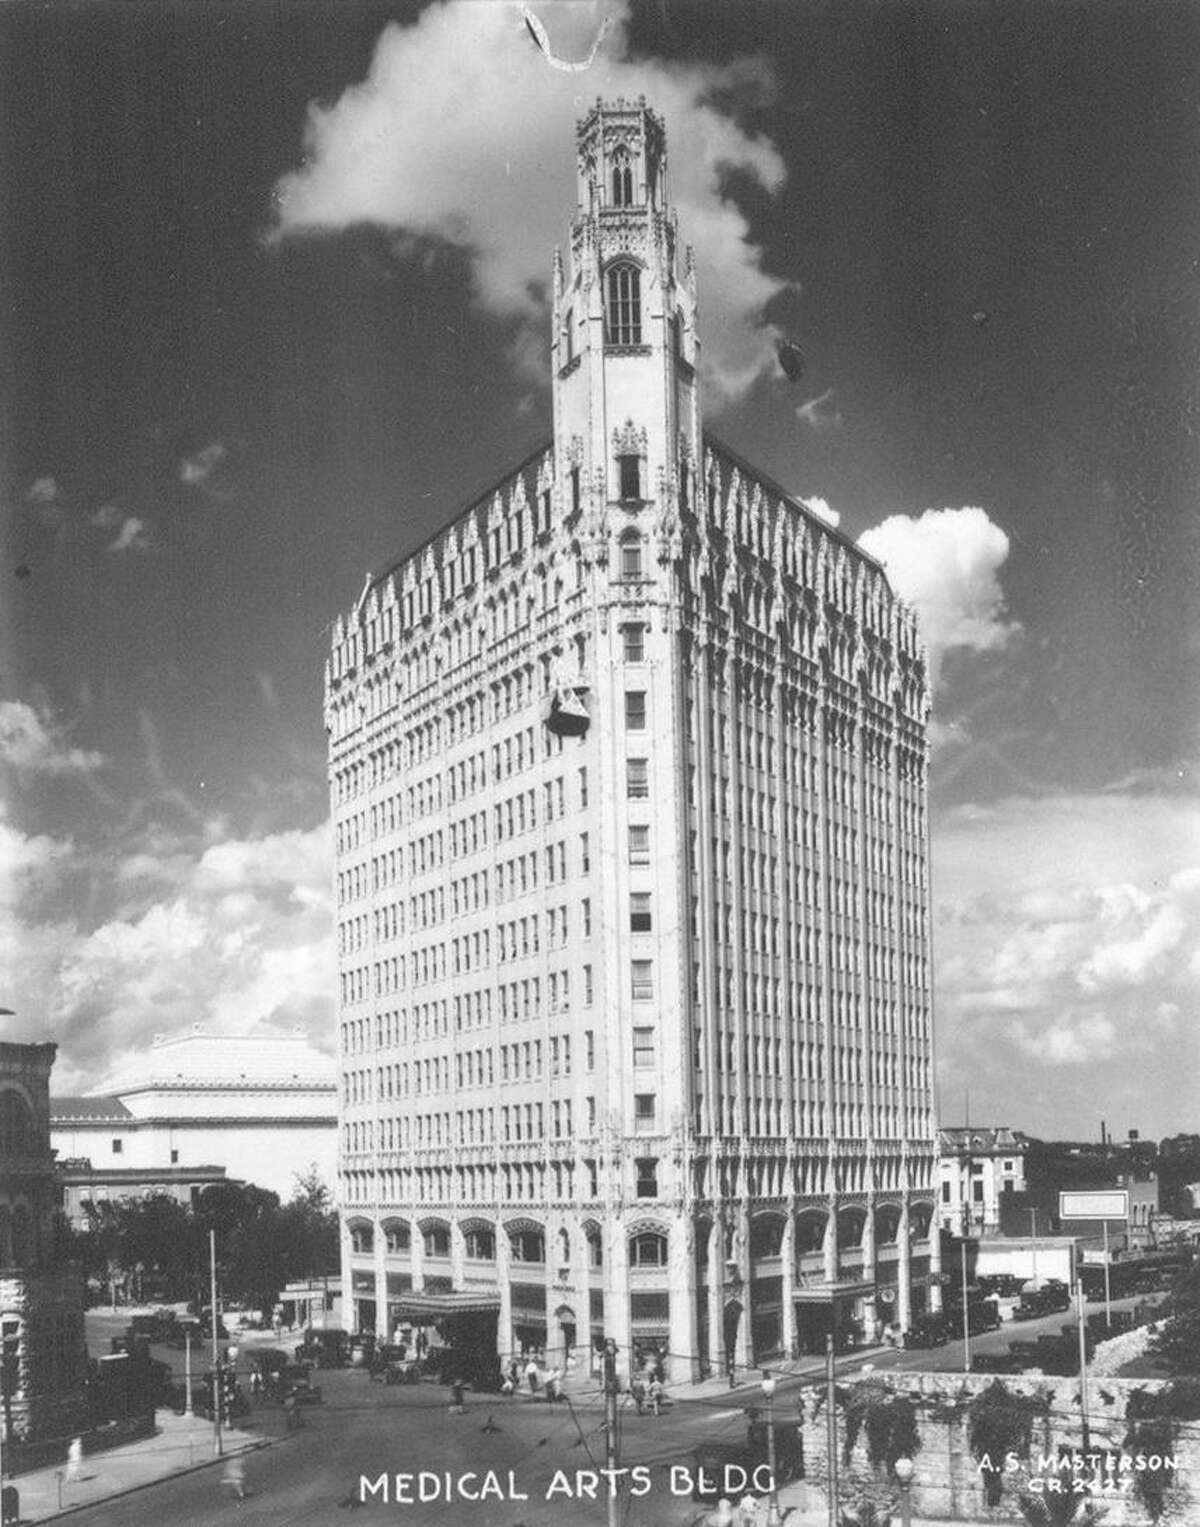 The Medical Arts Building, now the Emily Morgan Hotel, is shown in this c. 1928 photo.